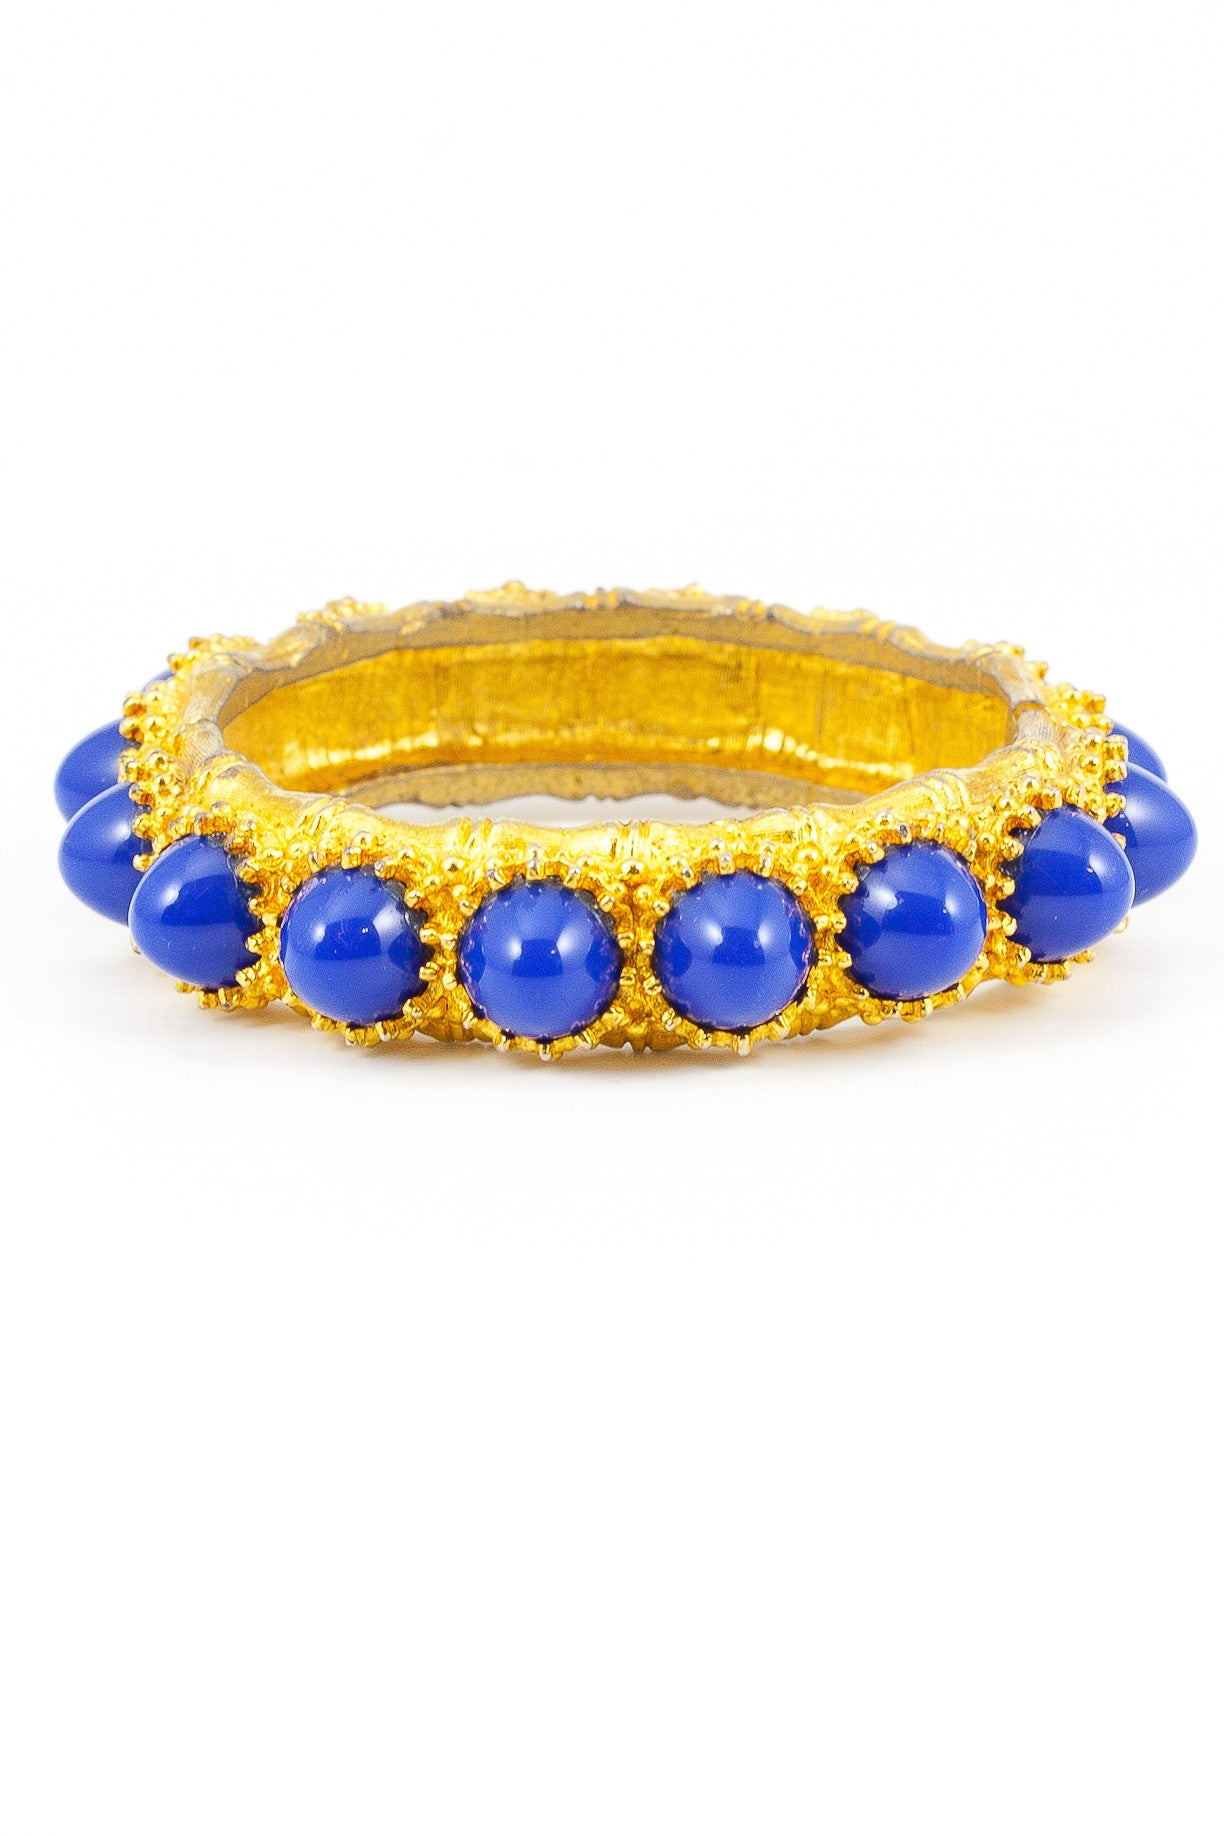 90's__Kenneth Jay Lane__Blue Spike Encrusted Statement Bangle